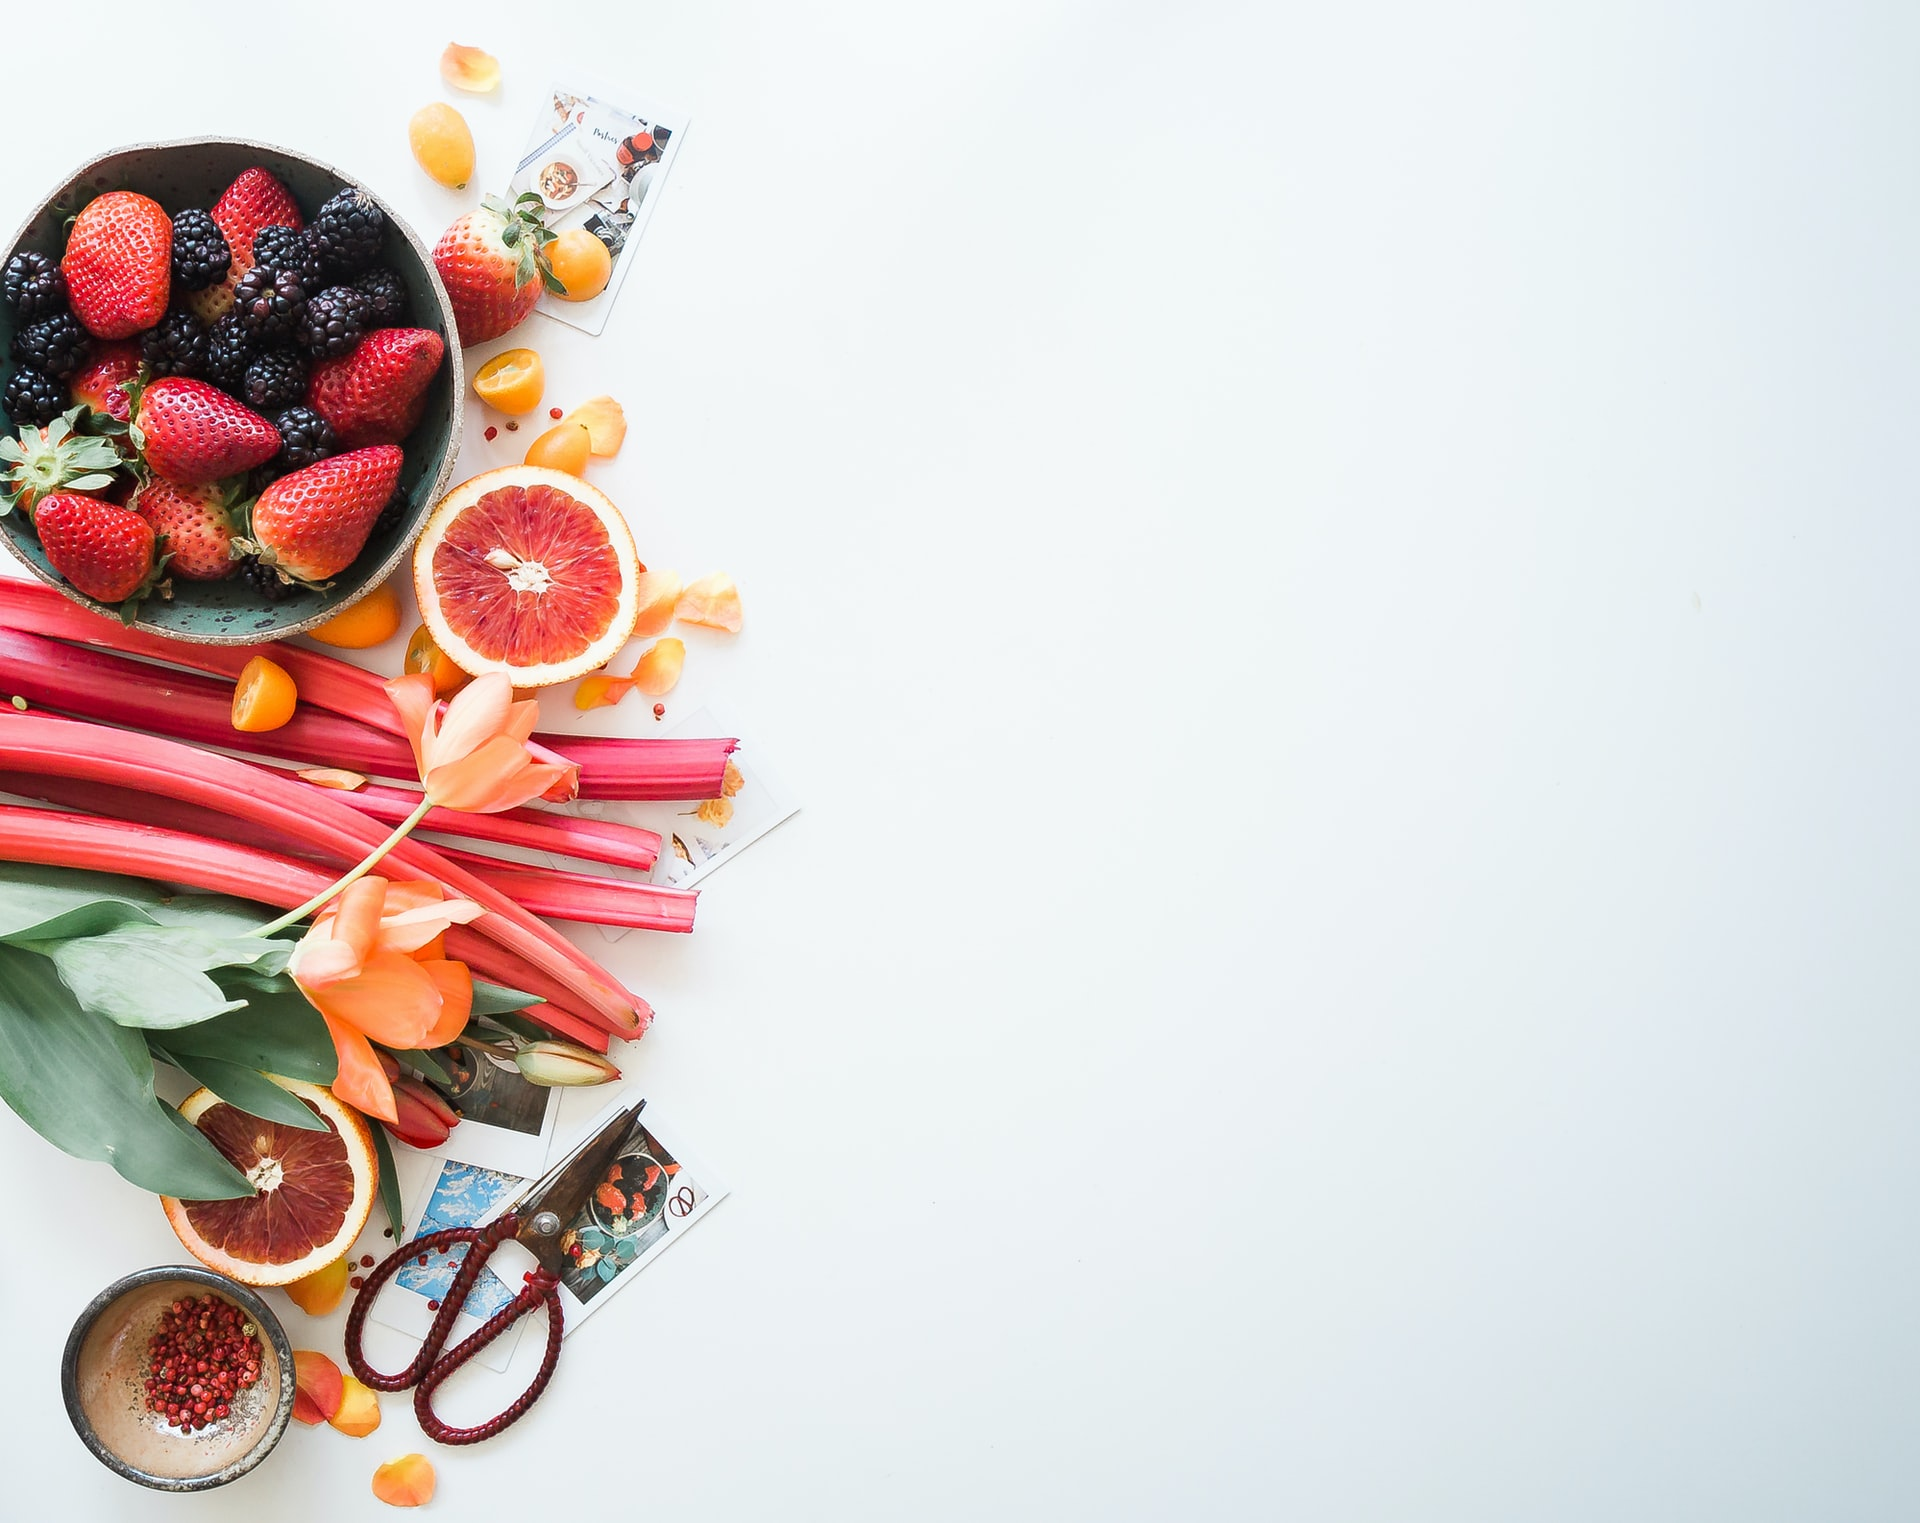 How our diets can affect our oral health